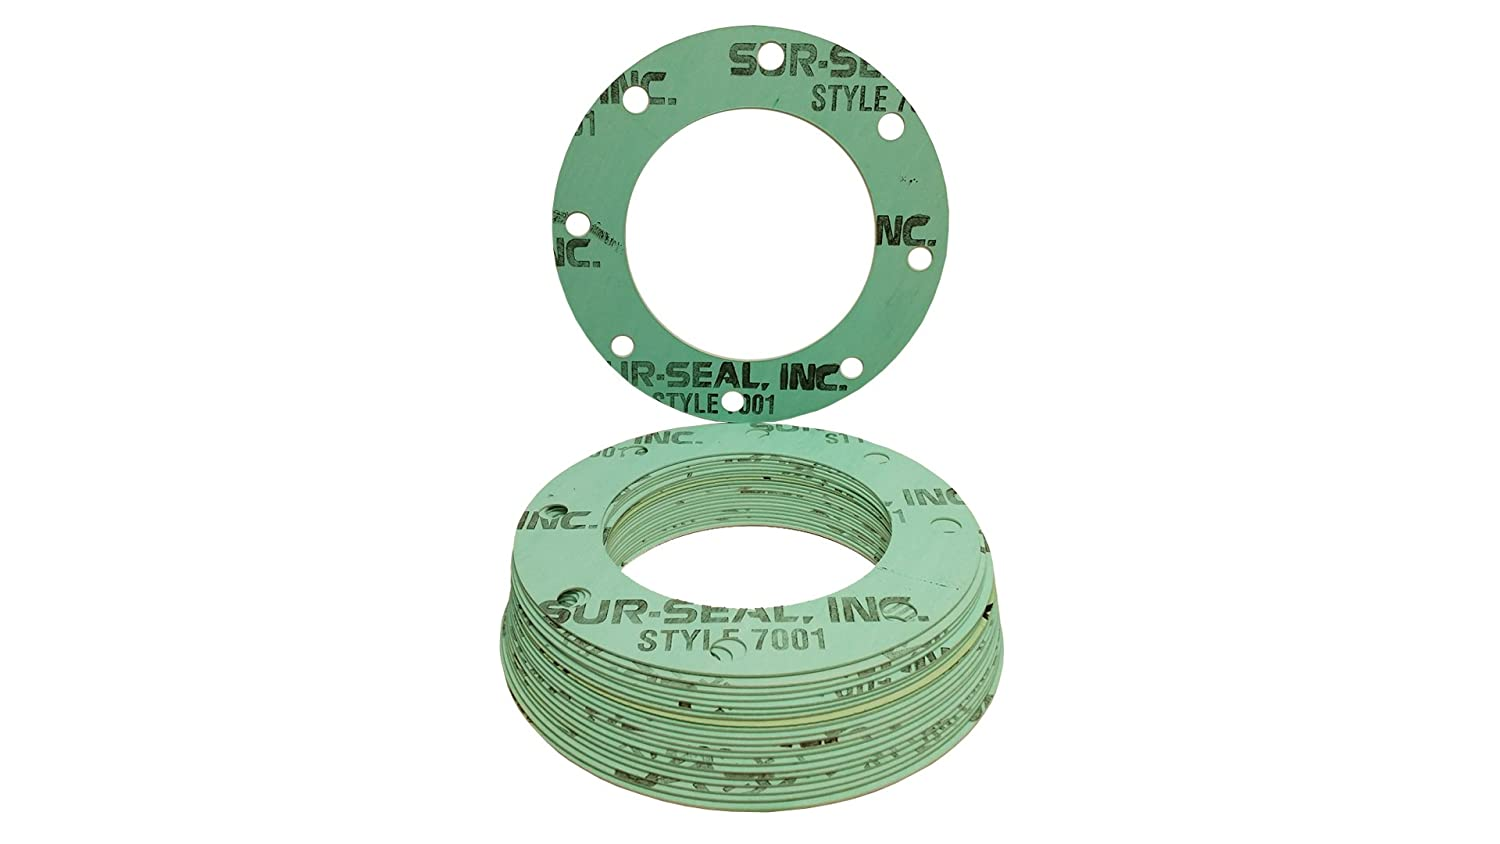 1//8 Thick Aramid Fibers//Nitrile Rubber 2 Pipe Size 2 Pipe Size 1//8 Thick 2.375 ID Supplied by Sur-Seal Inc Pack of 20 2.375 ID of NJ Full Face Gasket Sterling Seal CFF7001.200.125.150X20 7001 Compressed Non-Asbestos Pressure Class 150#